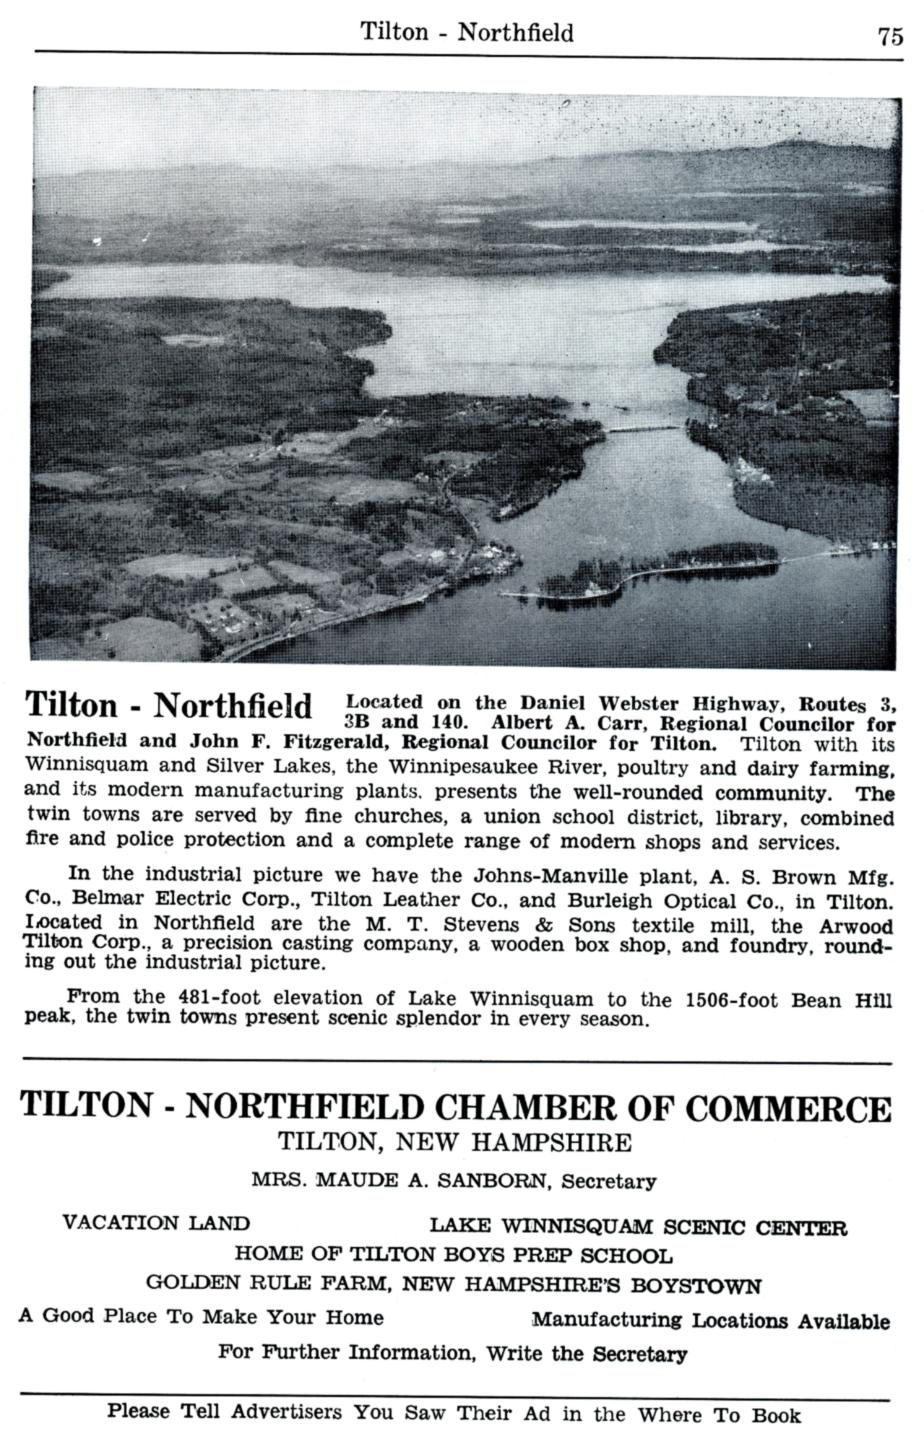 Tilton New Hampshire Visitors Guide - 1954